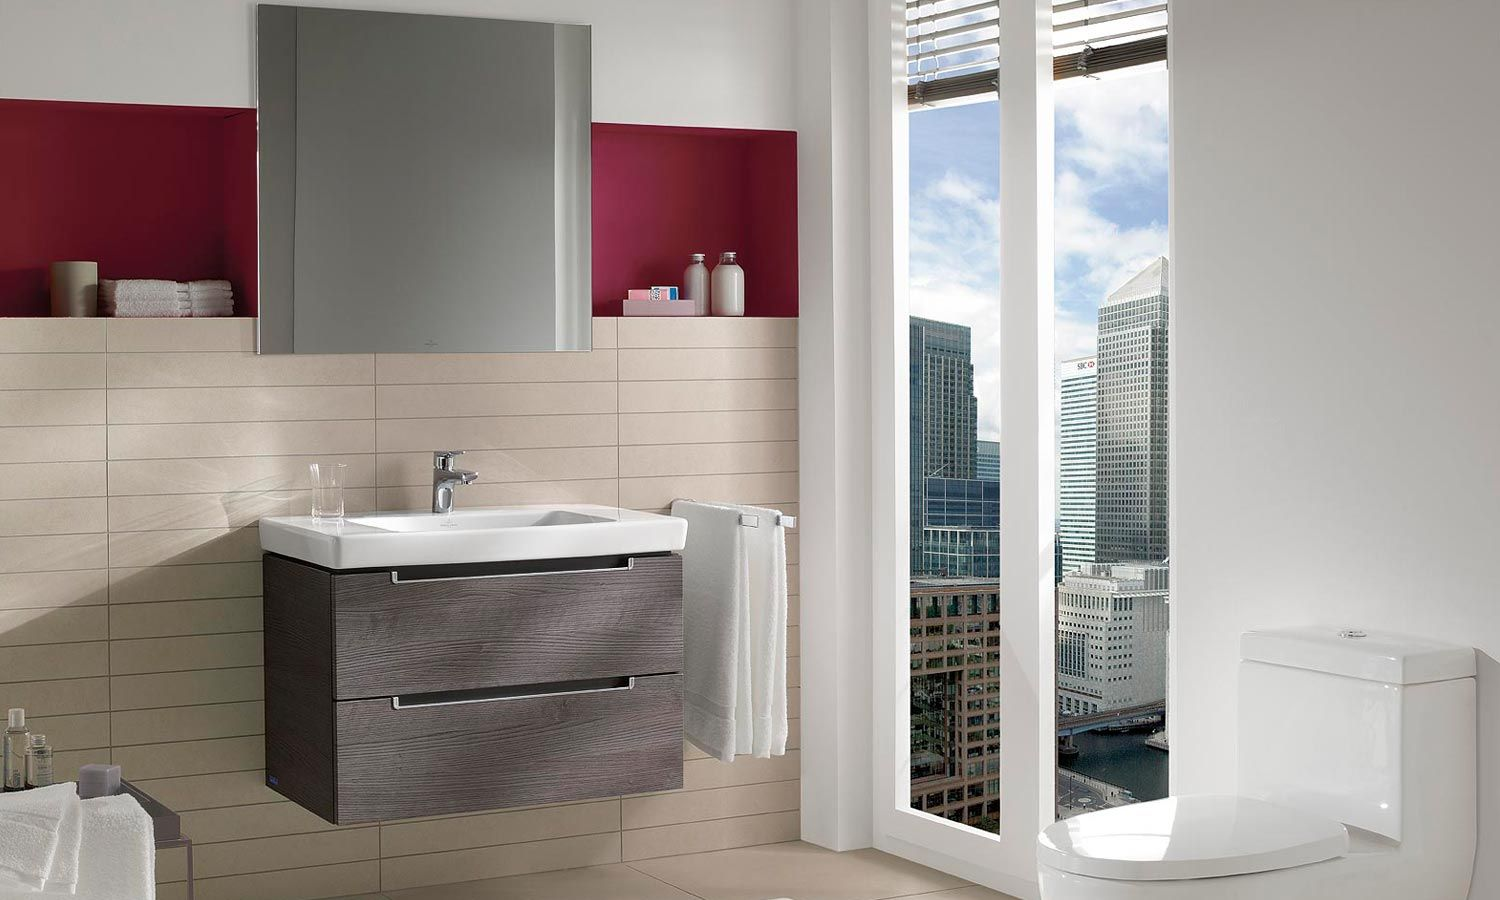 villeroy boch subway 20 vanity unit oak graphite - Villeroy And Boch Bathroom Cabinets